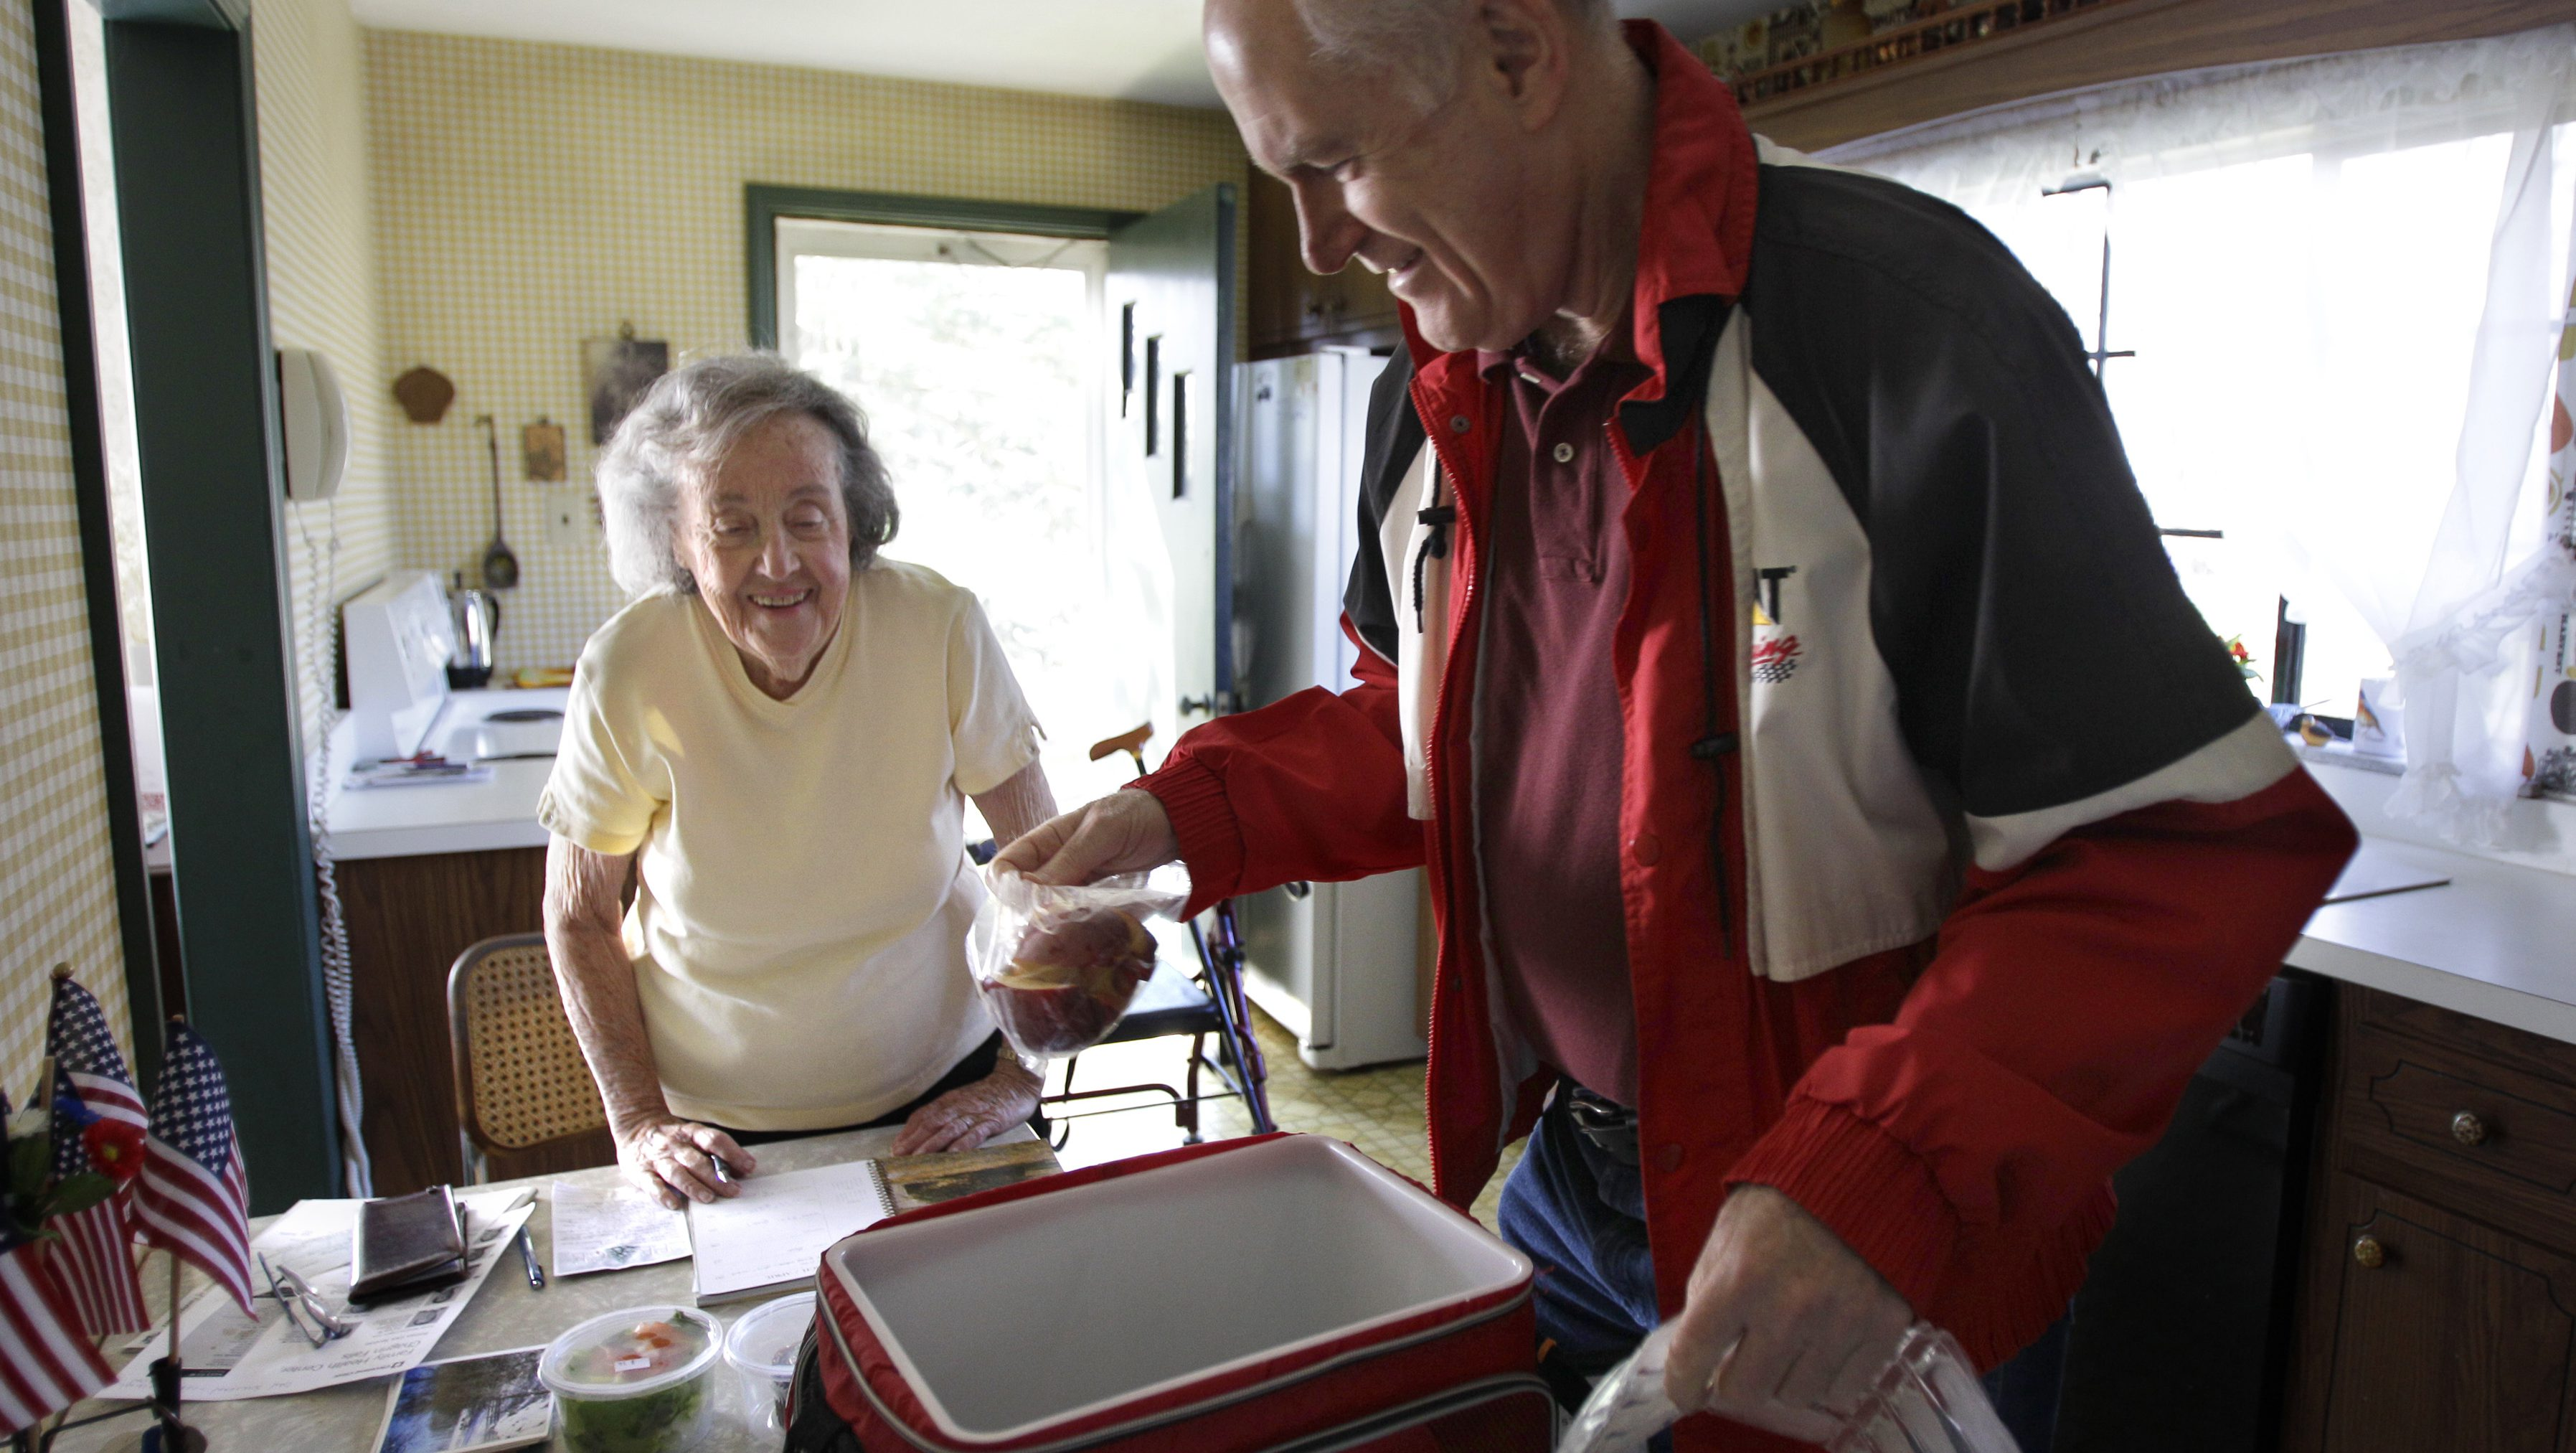 Marty Robertson unpacks food from the Chagrin Falls Meals on Wheels program for recipient Bernadette Winko, 90, in her Bentleyville, Ohio home on Wednesday,  March 14, 2012.  While Ohio's population growth has been nearly flat, the number of residents 65 and older has increased at a rate of nearly 8 percent, underscoring the growing need for senior services. Many Ohio counties are investing in in-home help, like Meals on Wheels,  aimed at enabling older residents to age in their own homes. (AP Photo/Amy Sancetta)